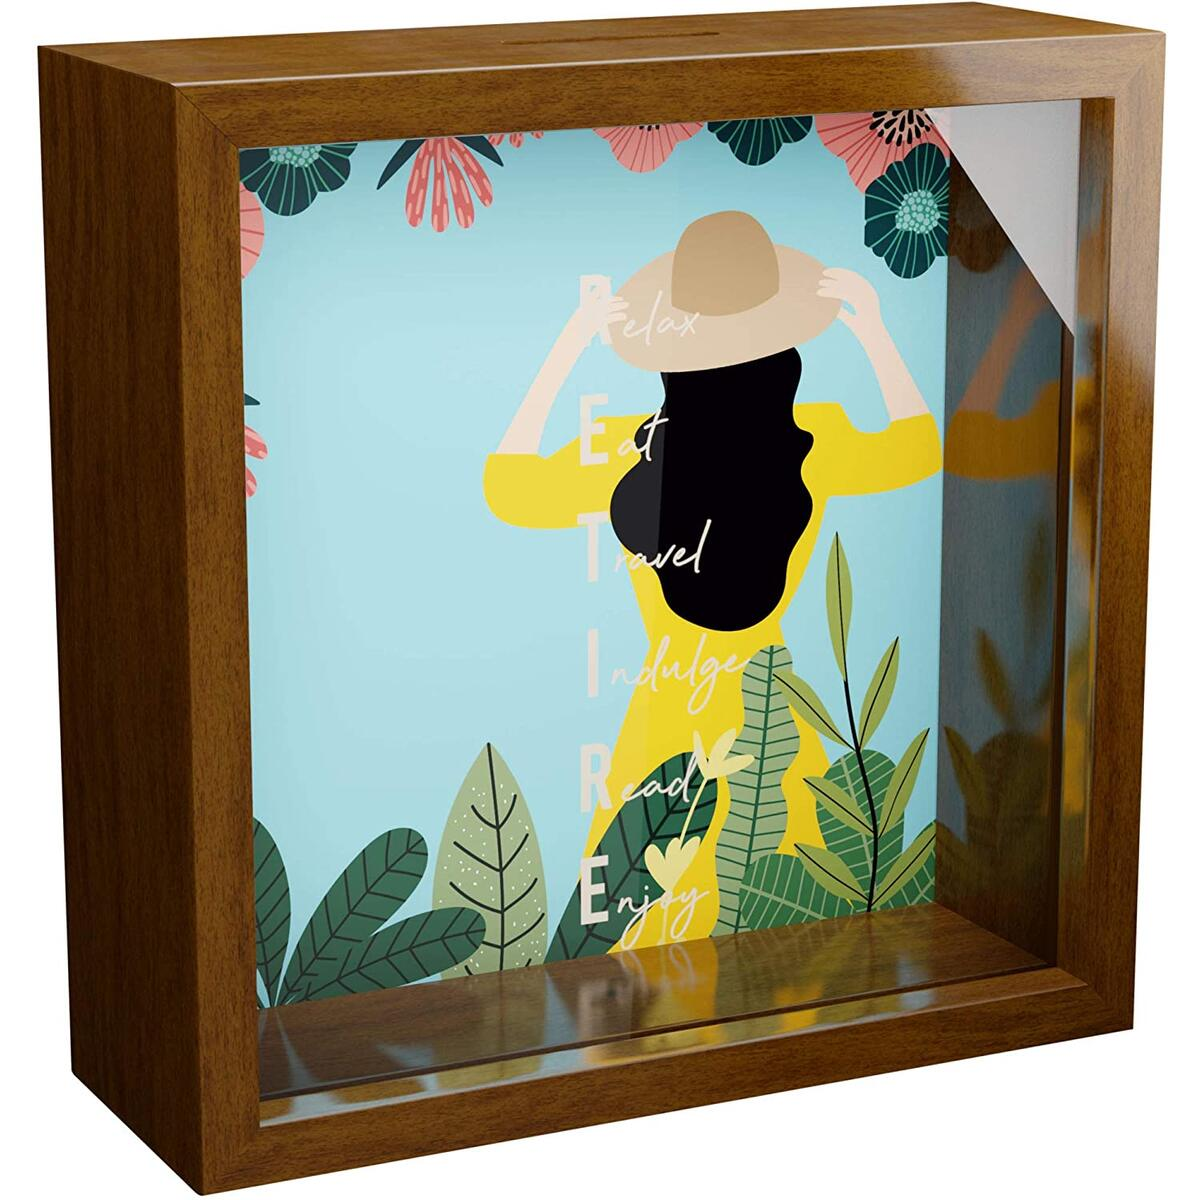 Retirement Gifts for Women | 6x6x2 Memorabilia Shadow Box with Glass Front | Wooden Keepsake for Wall Decor | Gift for Retired Women | Fun Memory Box | Special to Collect Memories